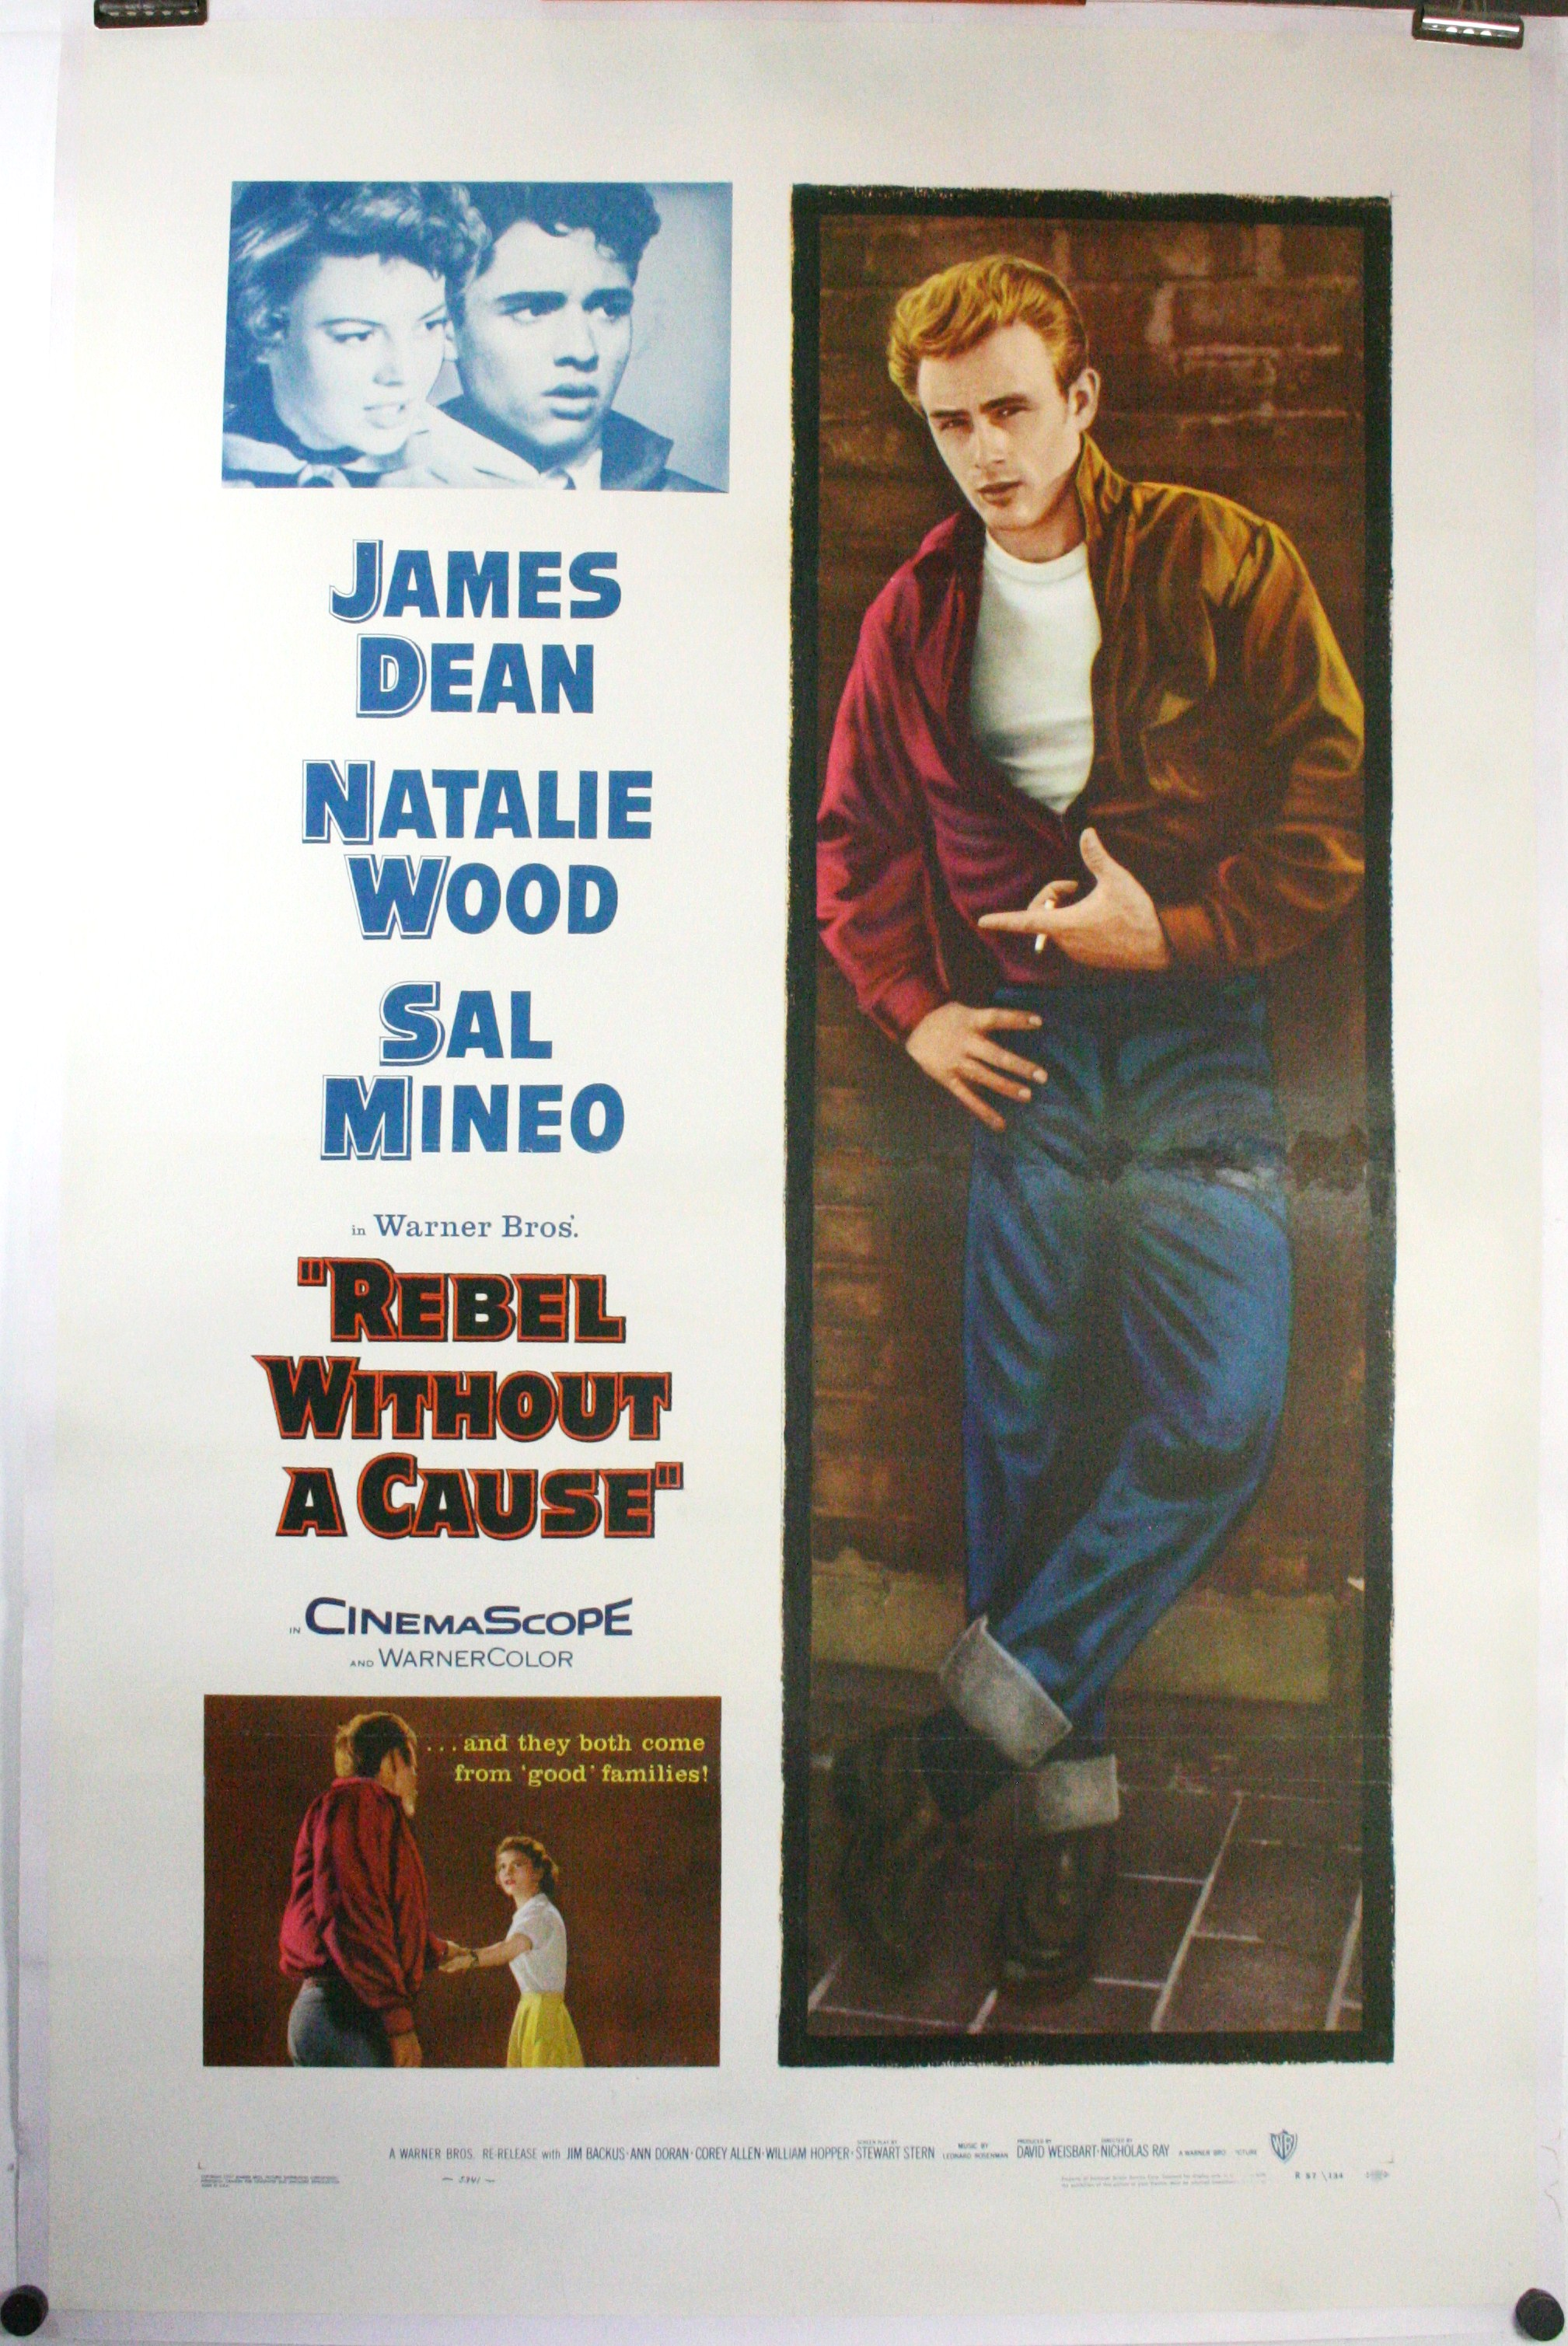 REBEL WITHOUT A CAUSE, Original James Dean Movie Poster